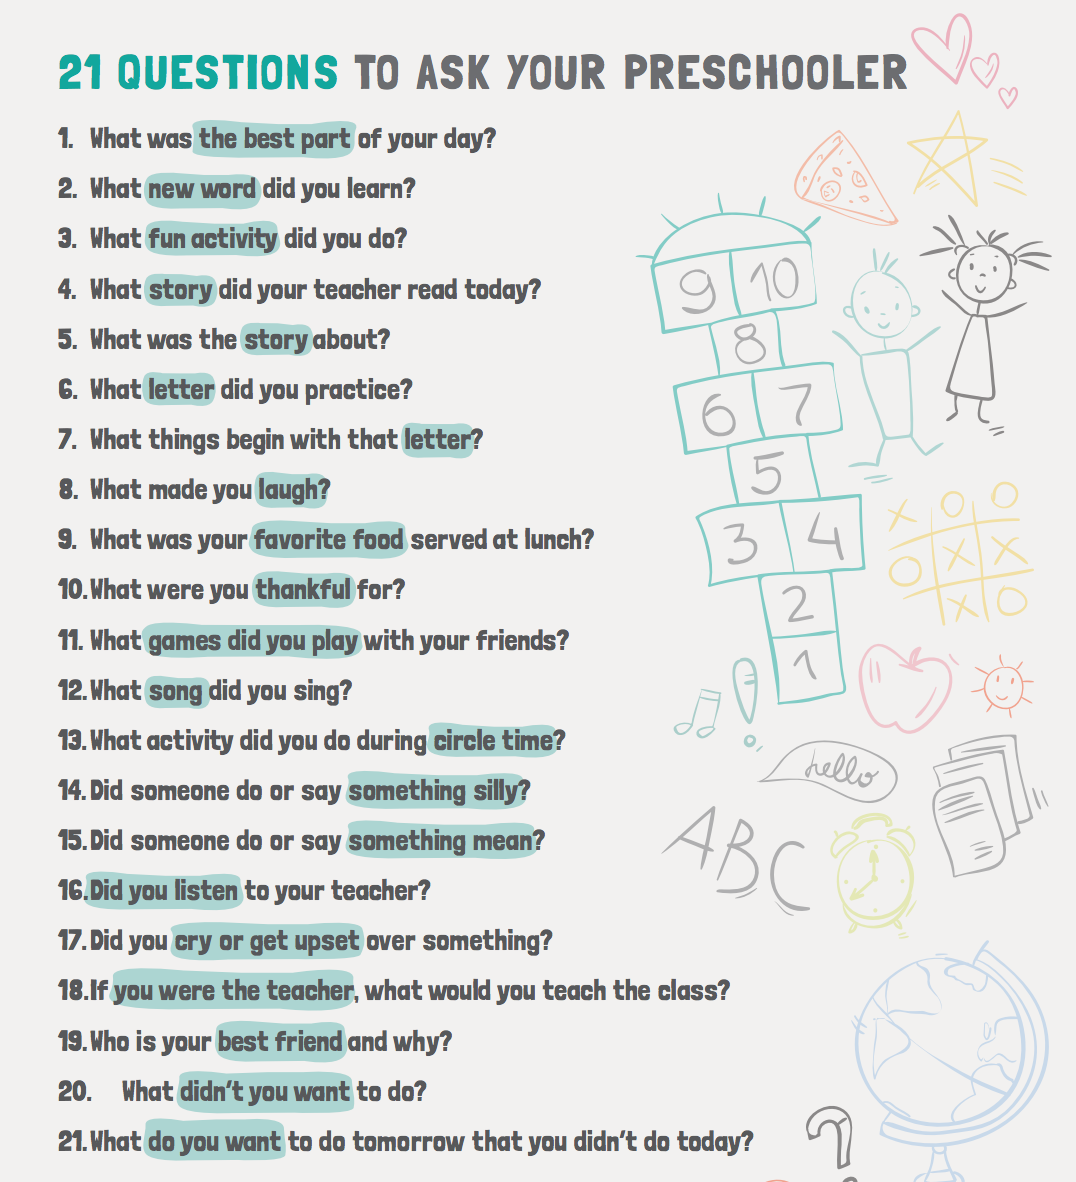 21 Questions To Ask Your Preschooler